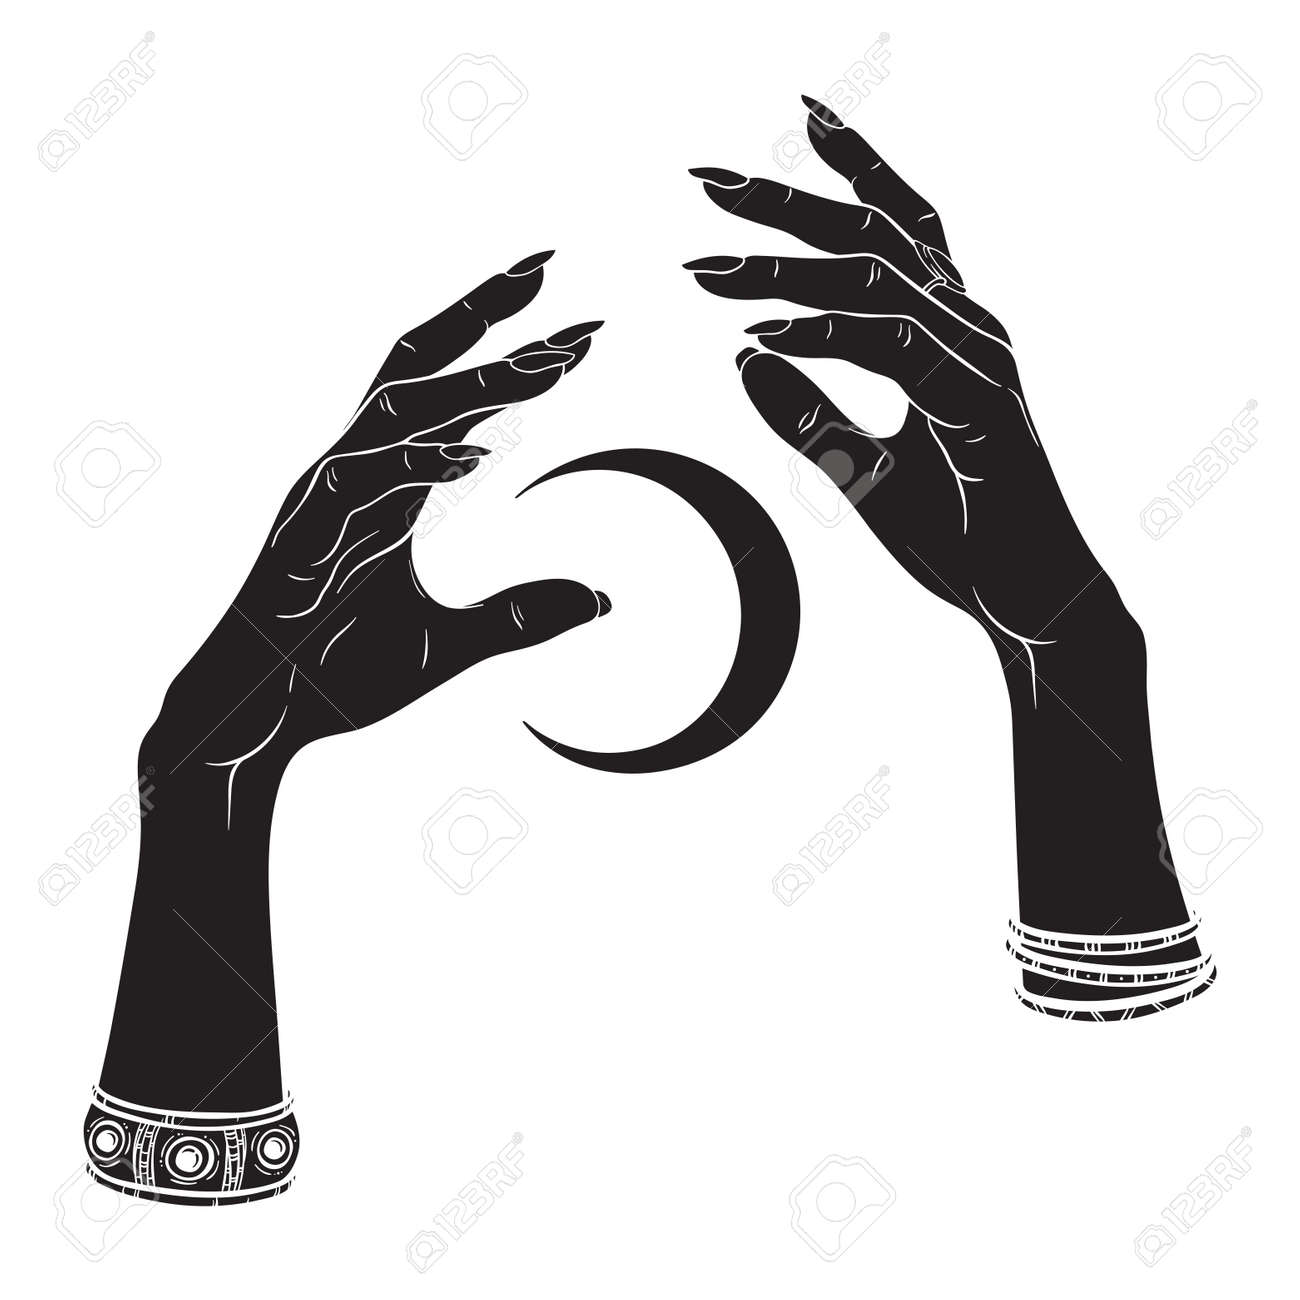 Hand drawn female witch hands holding crescent moon. Flash tattoo, sticker, patch or print design vector illustration - 172905435